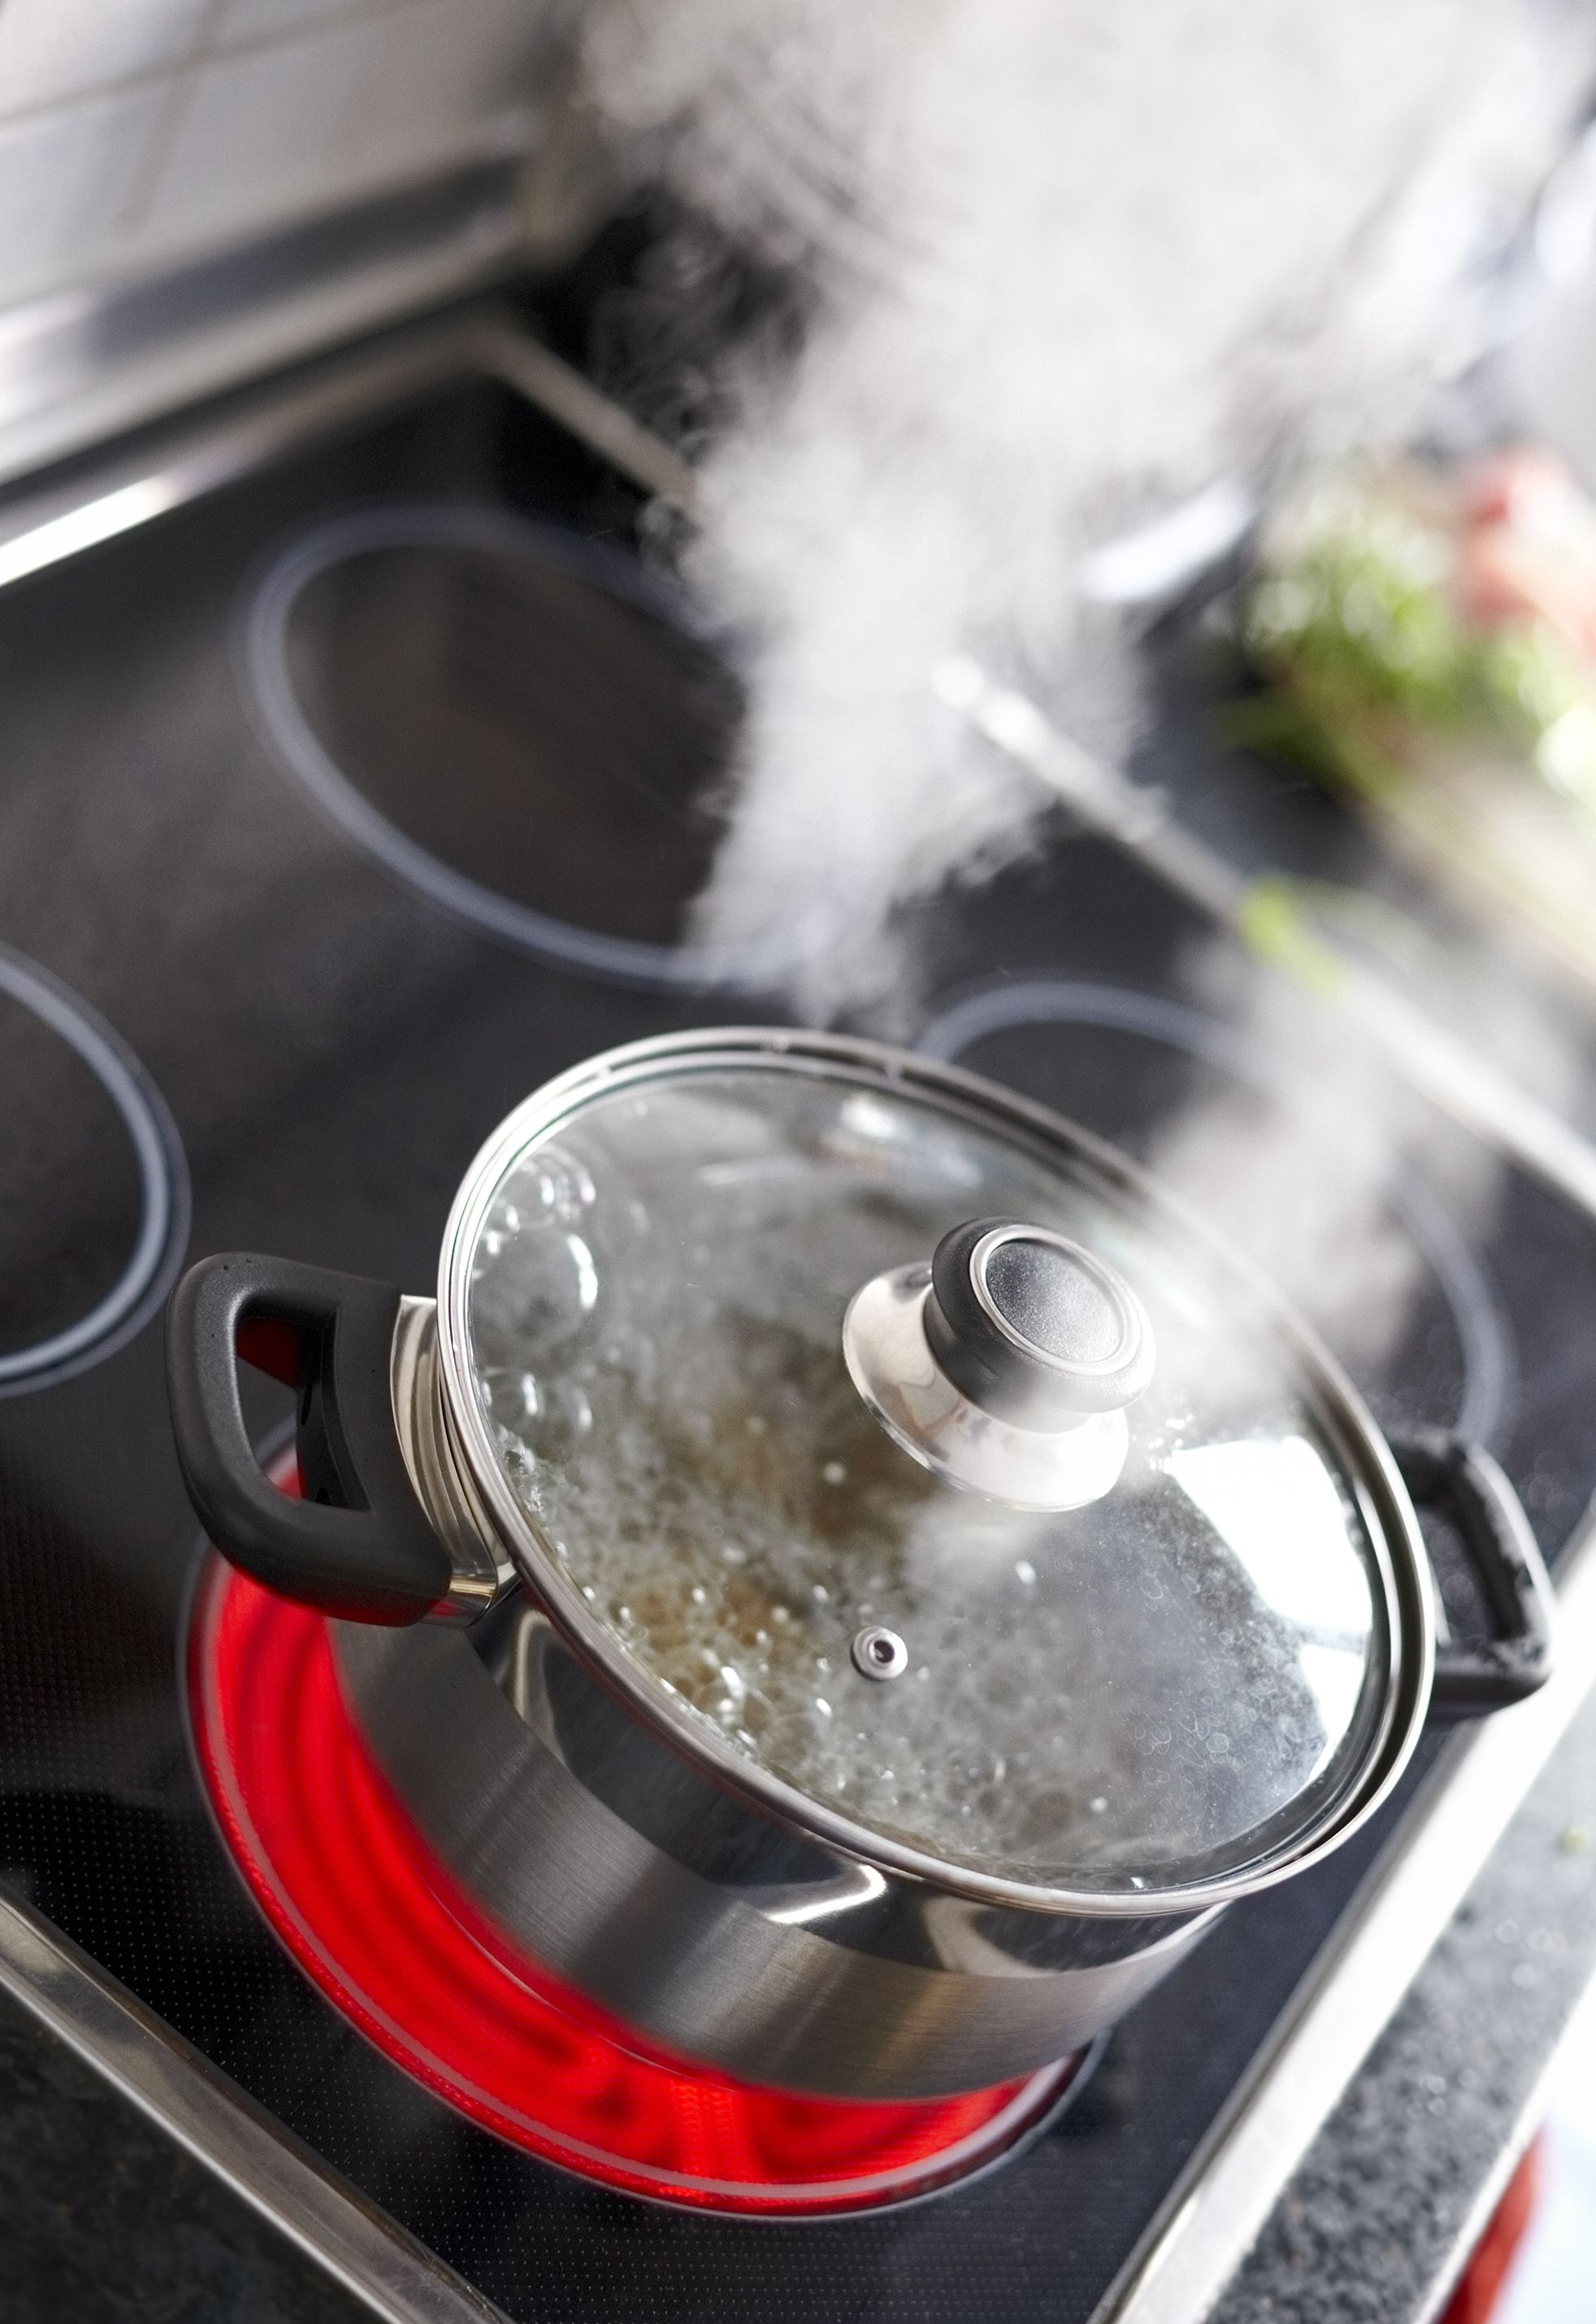 Steam Burns: Symptoms, Treatment, and Prevention